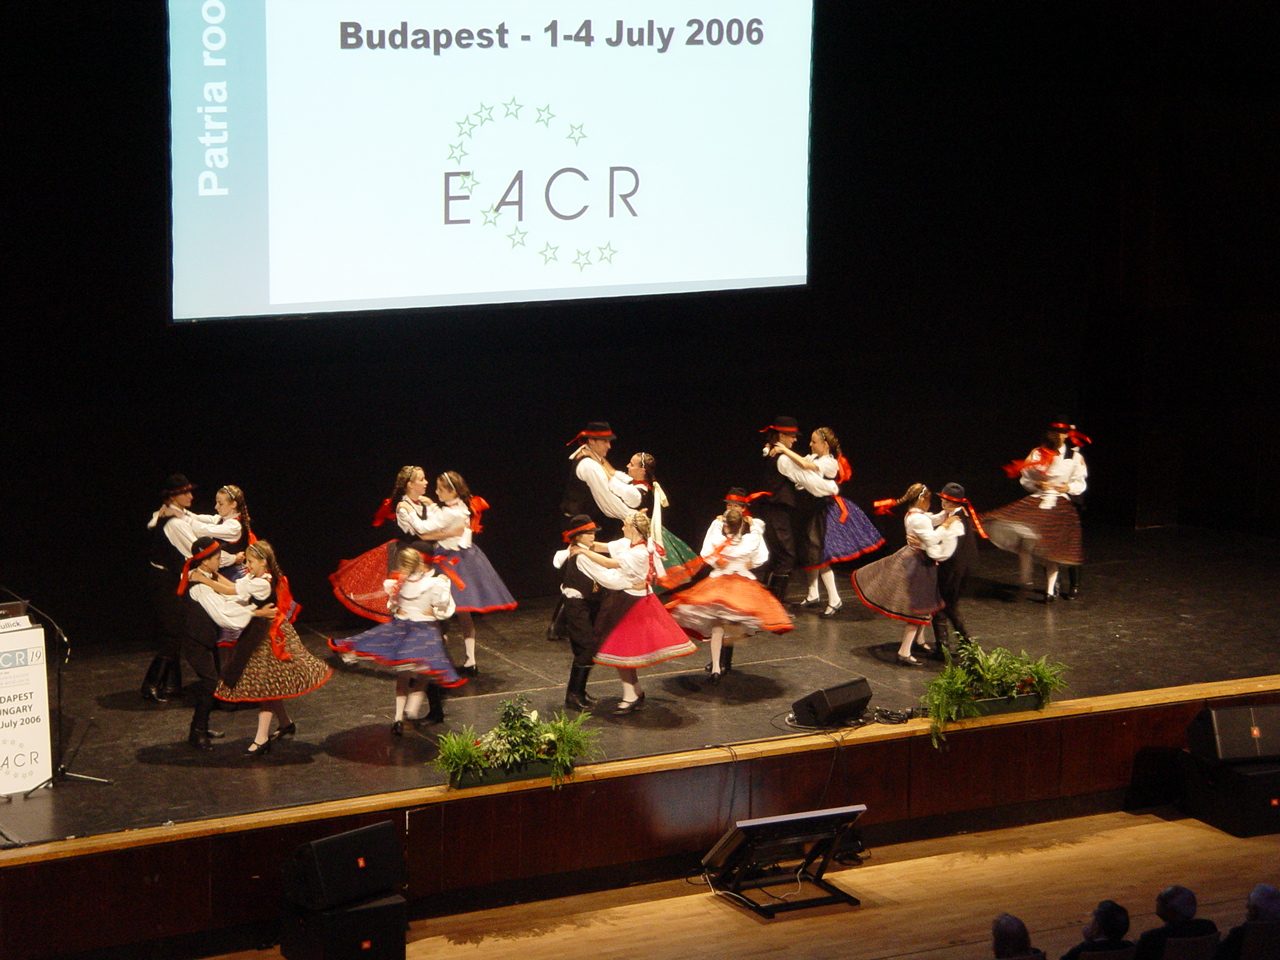 EACR – European Association of Cancer Research 2006